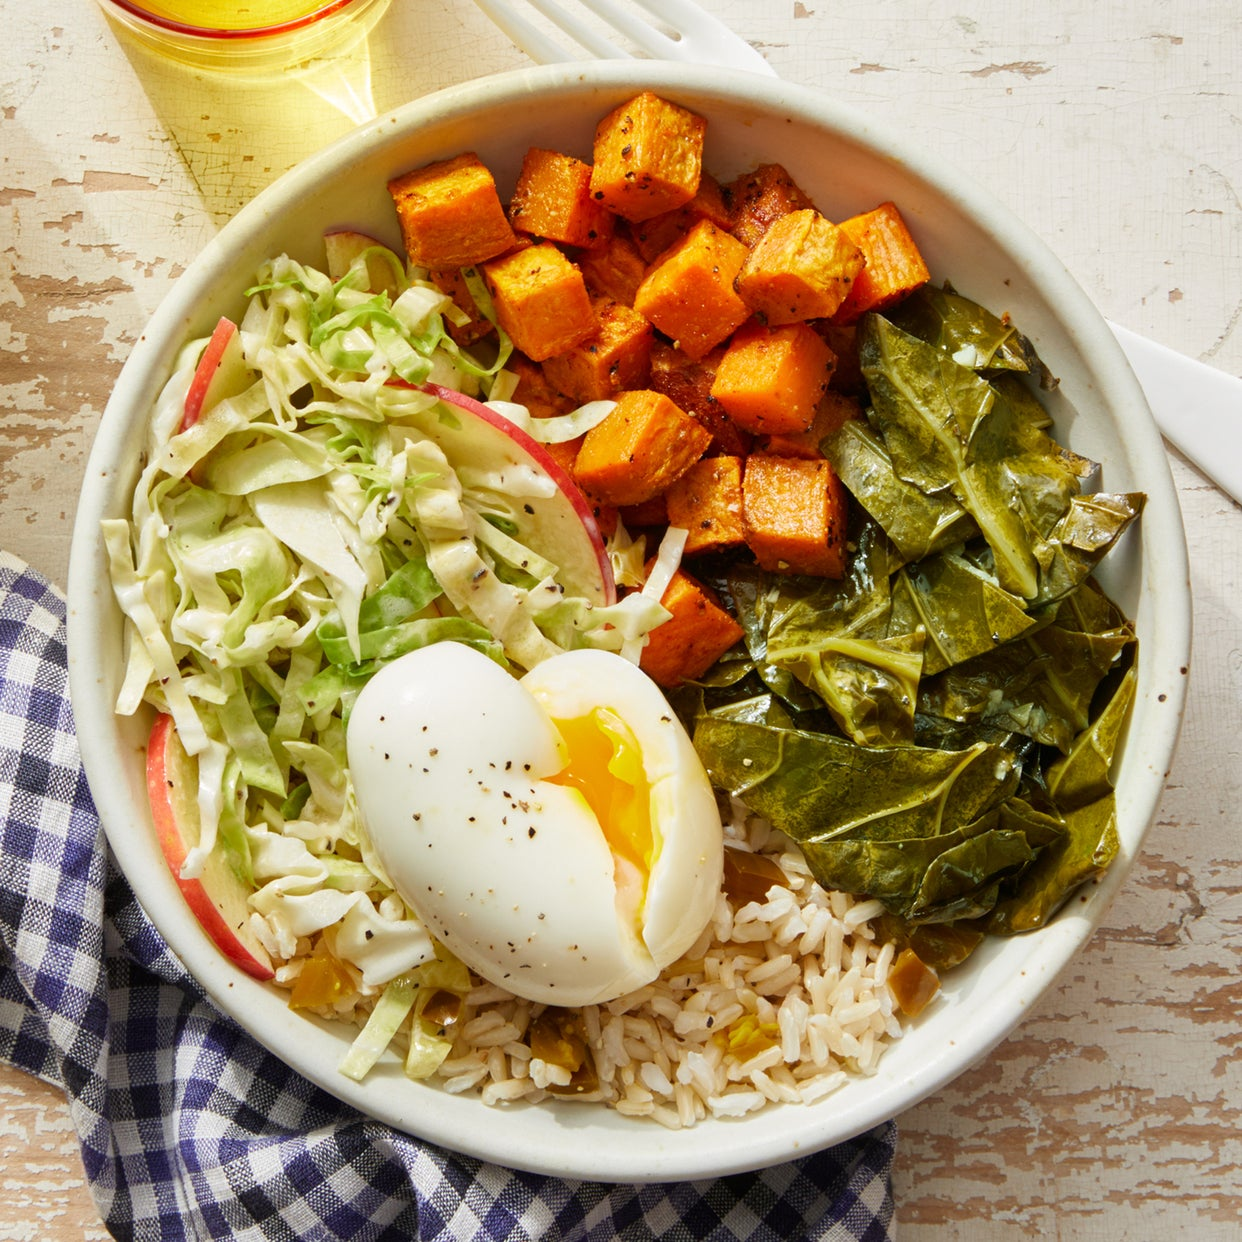 Southern-Style Rice Bowl with Sweet Potatoes, Collard Greens, & a Soft-Boiled Egg